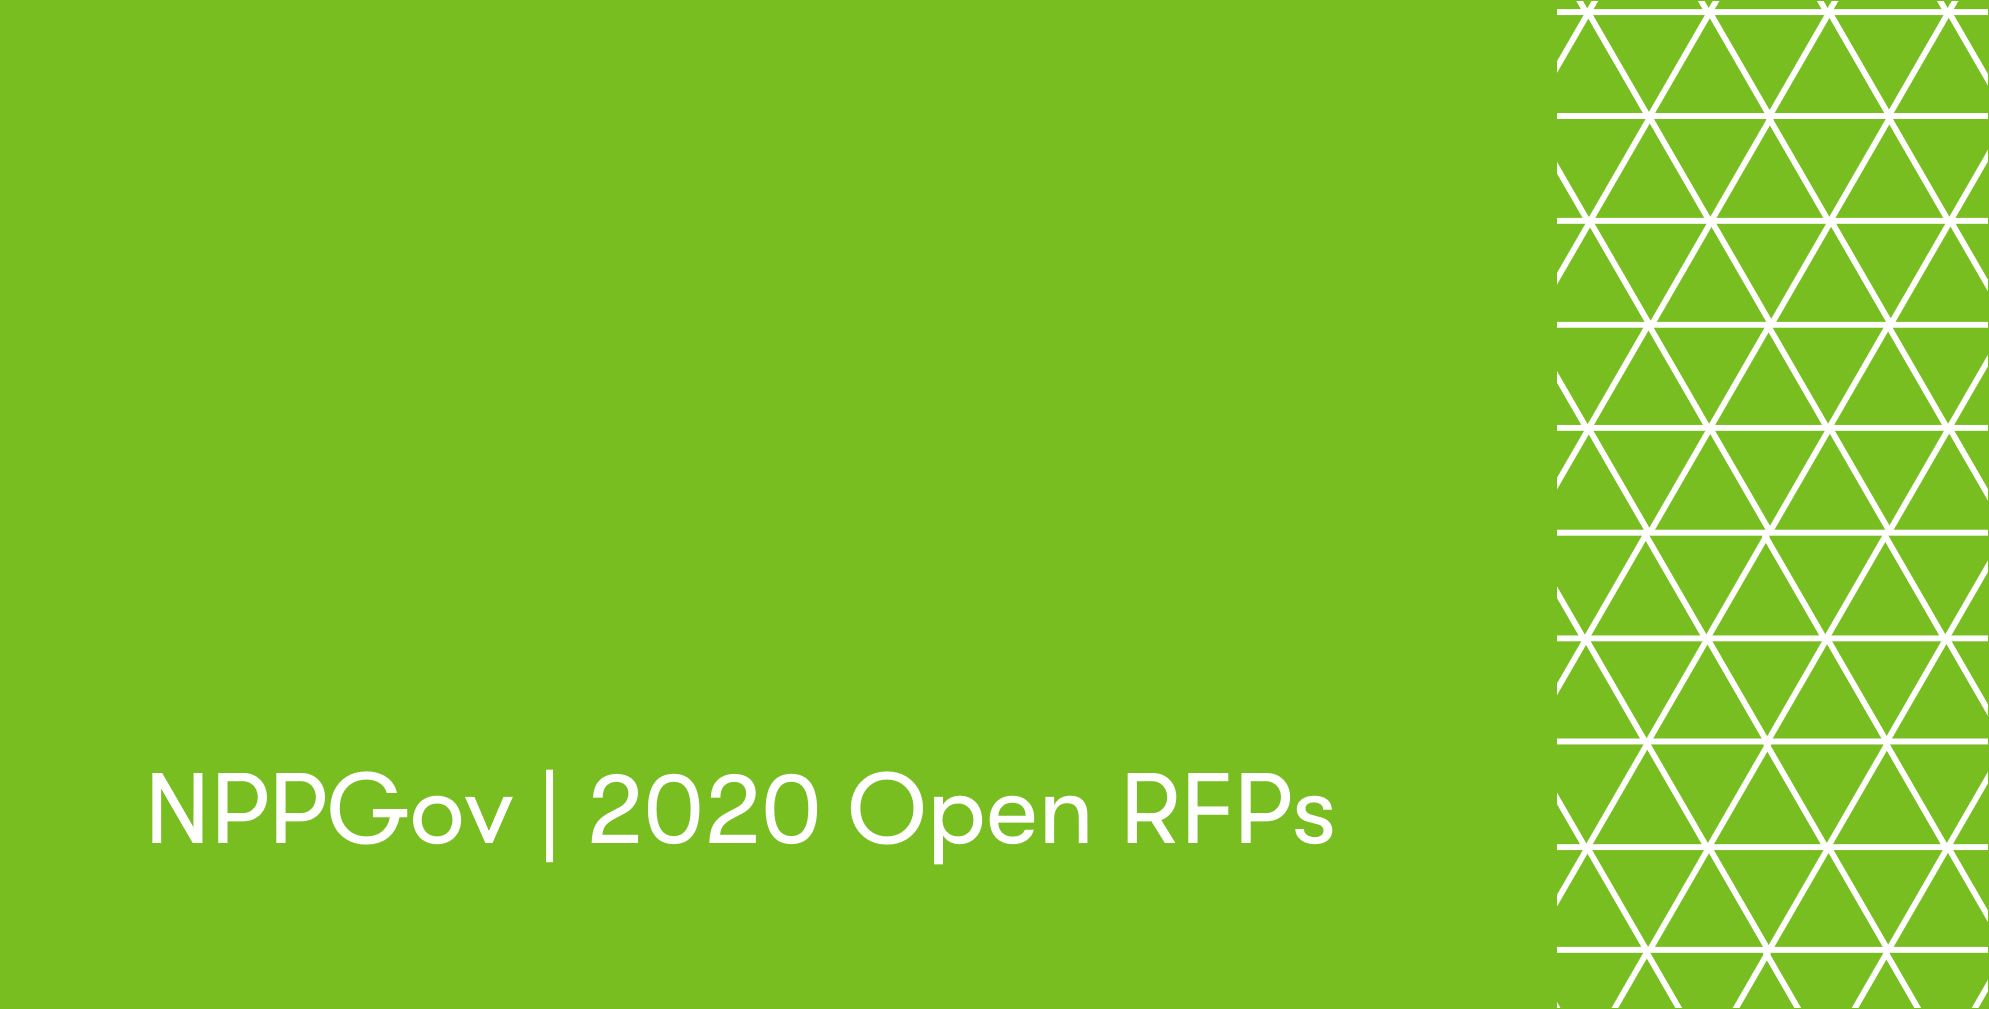 NPPGov 2020 RFP Announcement